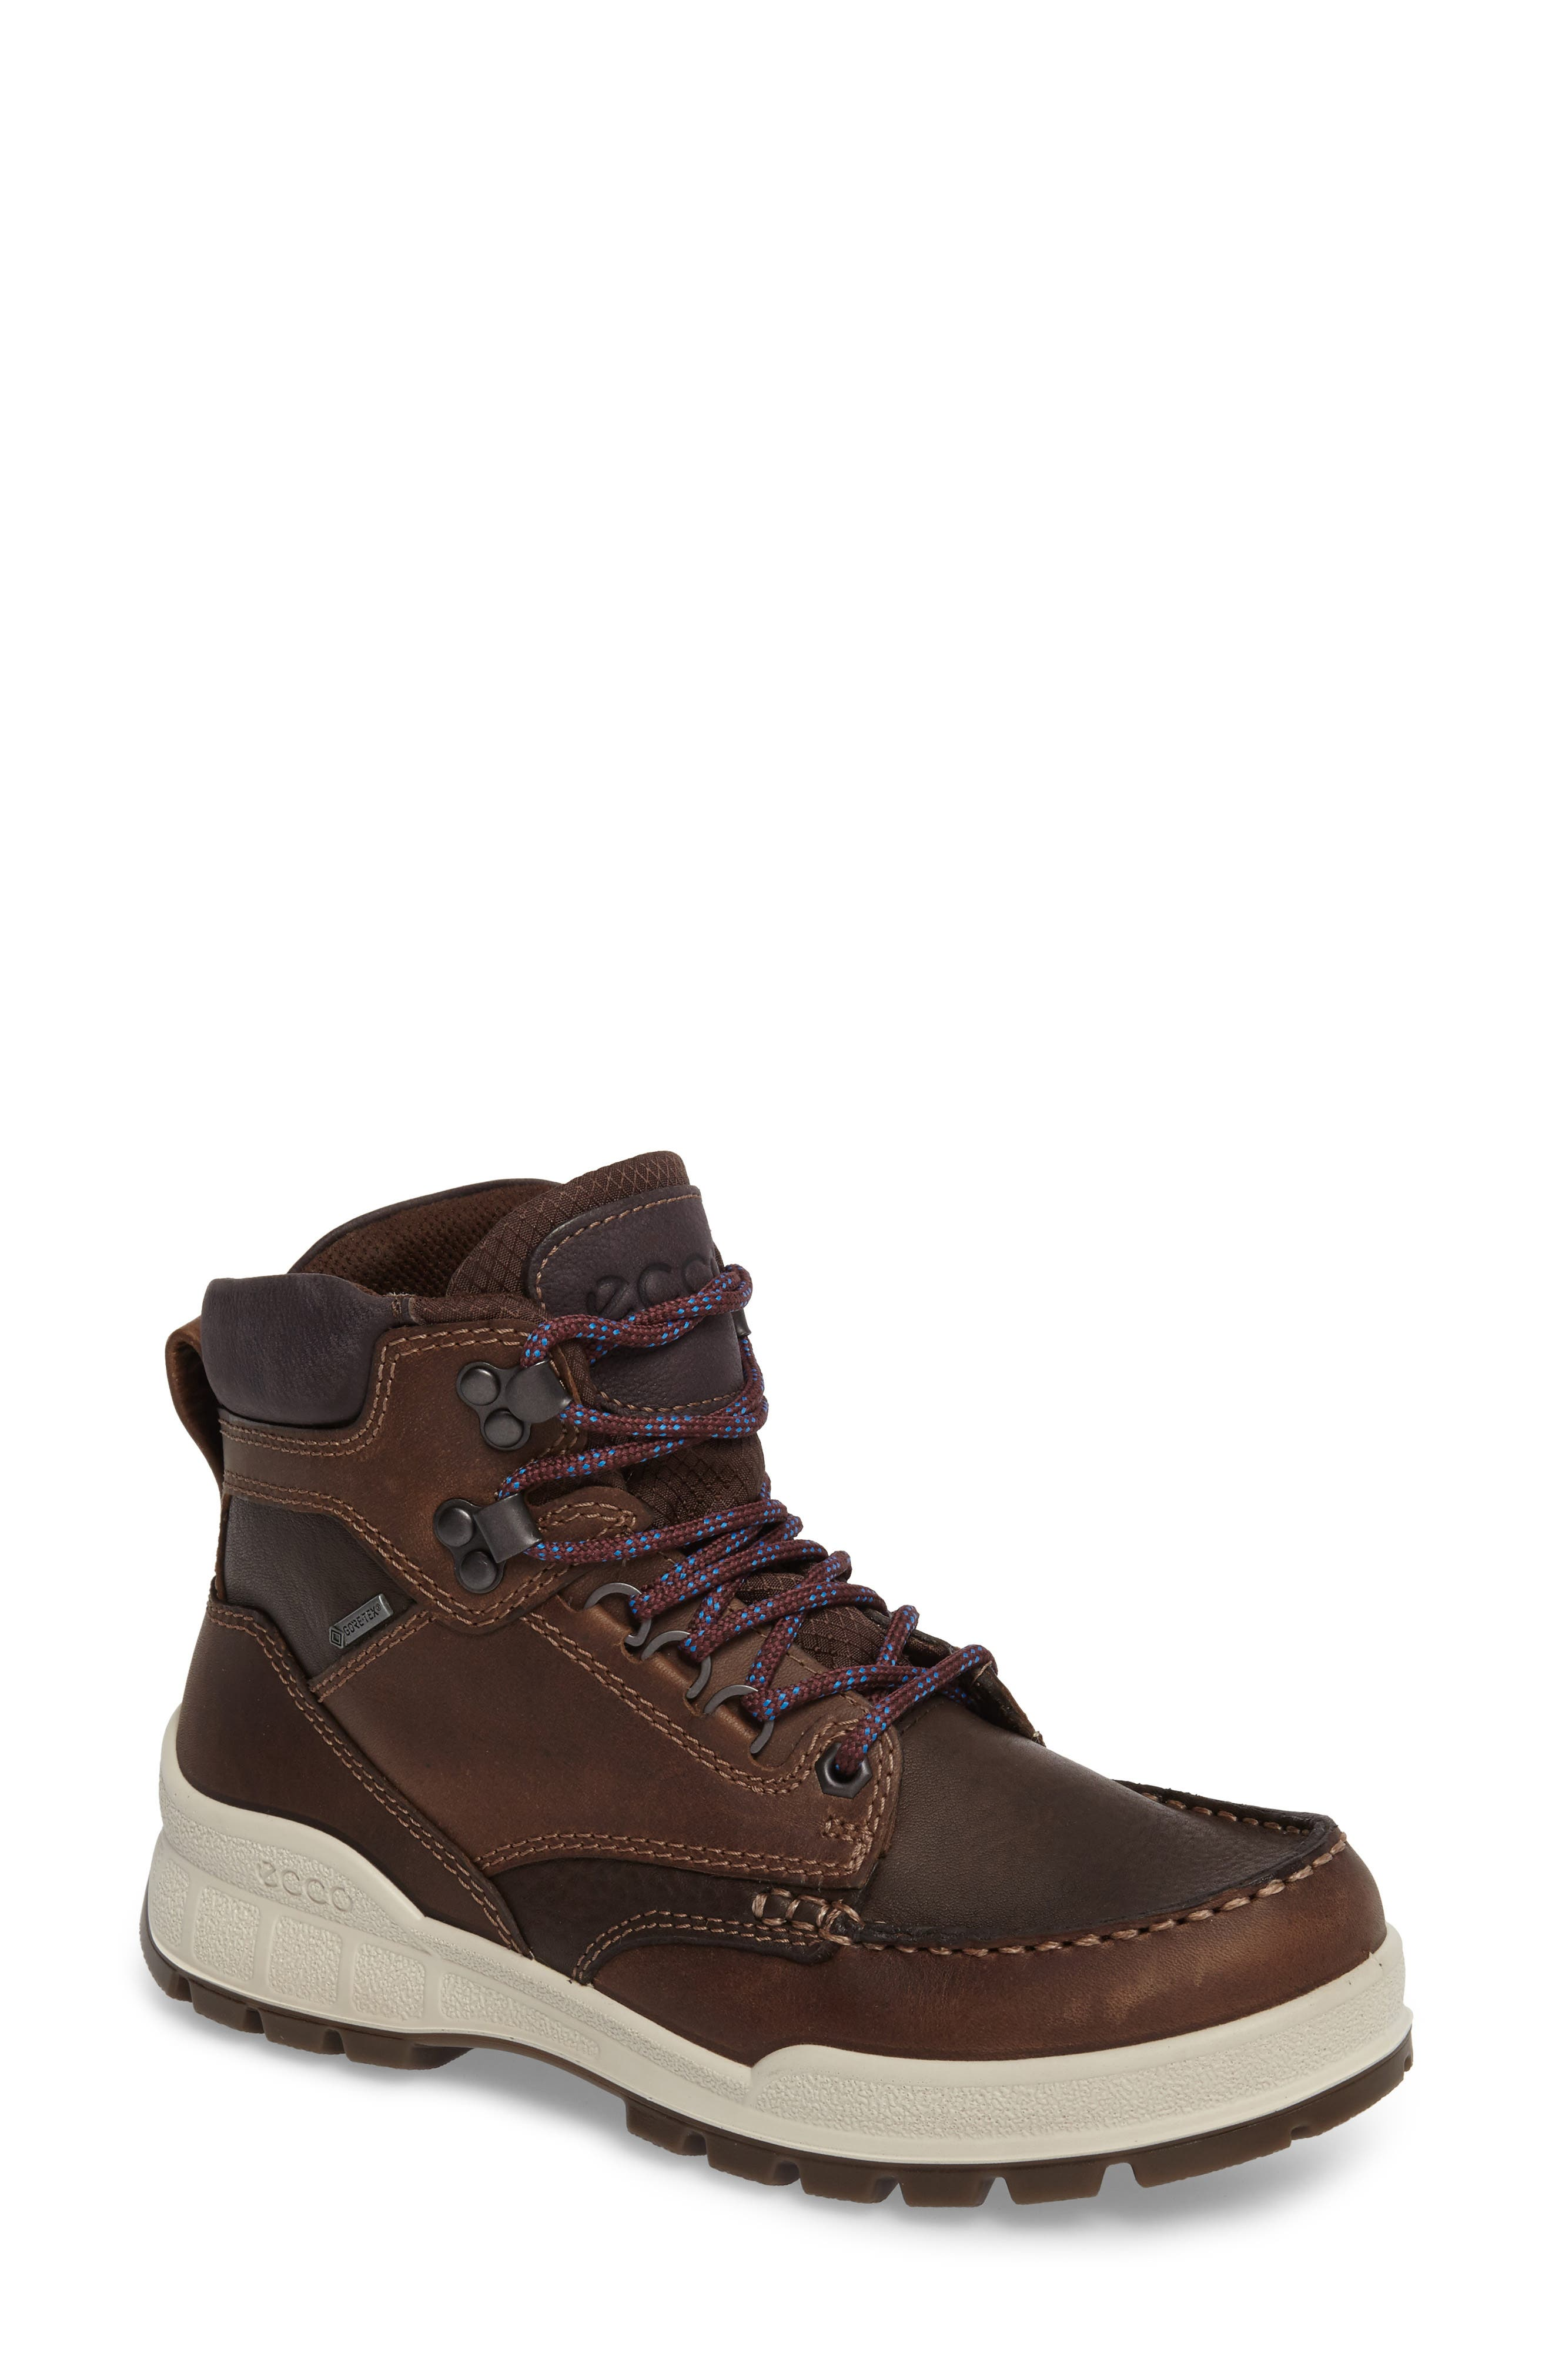 Track 25 Gore-Tex<sup>®</sup> Waterproof Hiking Boot,                         Main,                         color, Cocoa Brown Leather